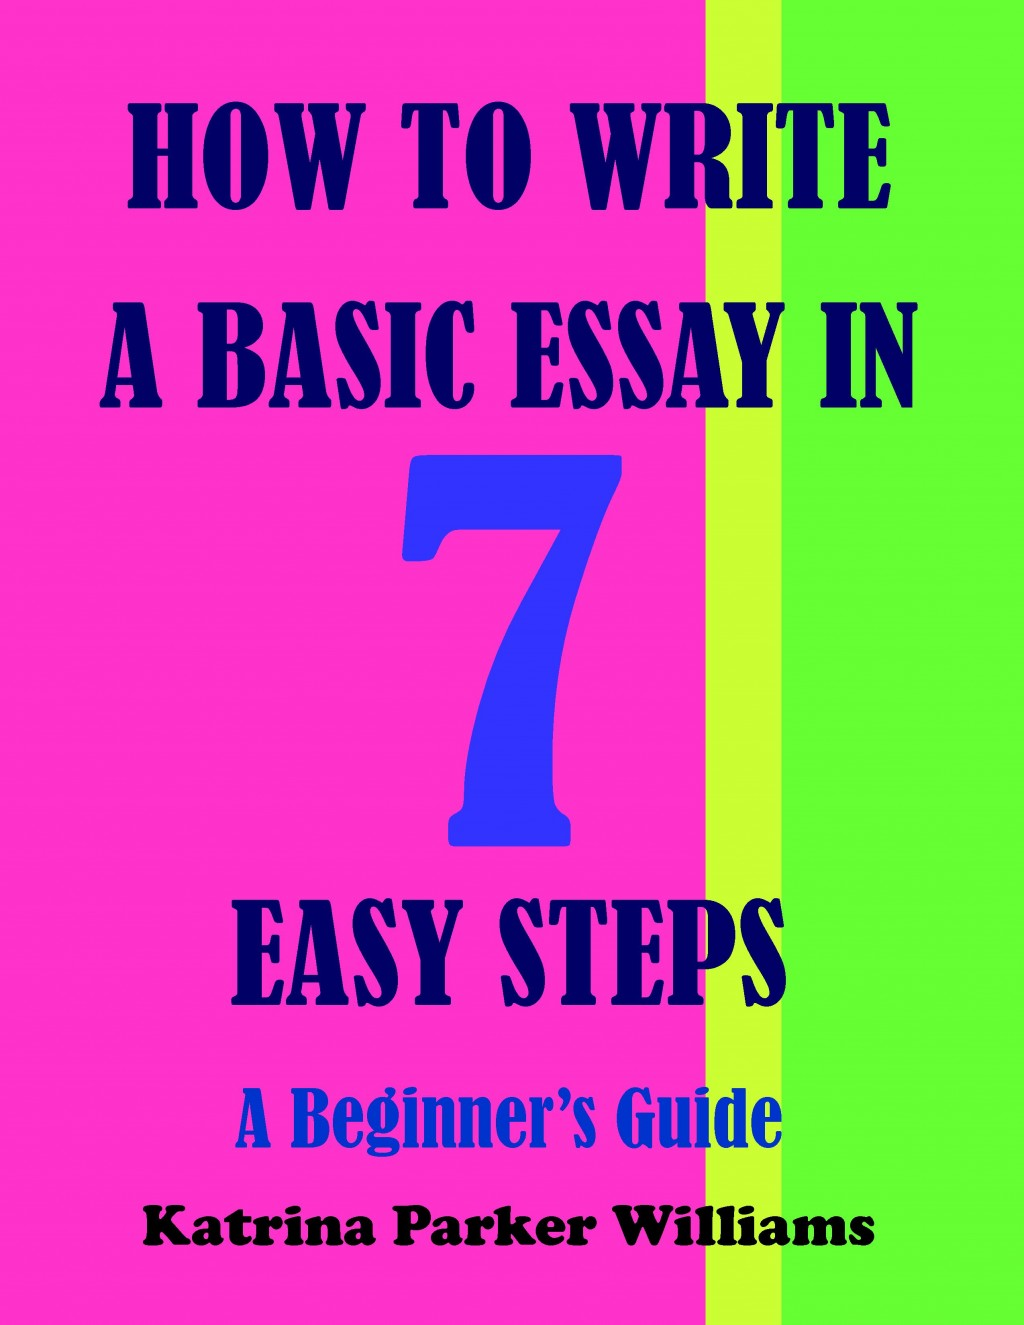 014 How To Write Basic Essay In Seven Easy Steps Writing An Stunning Middle School Argumentative Large